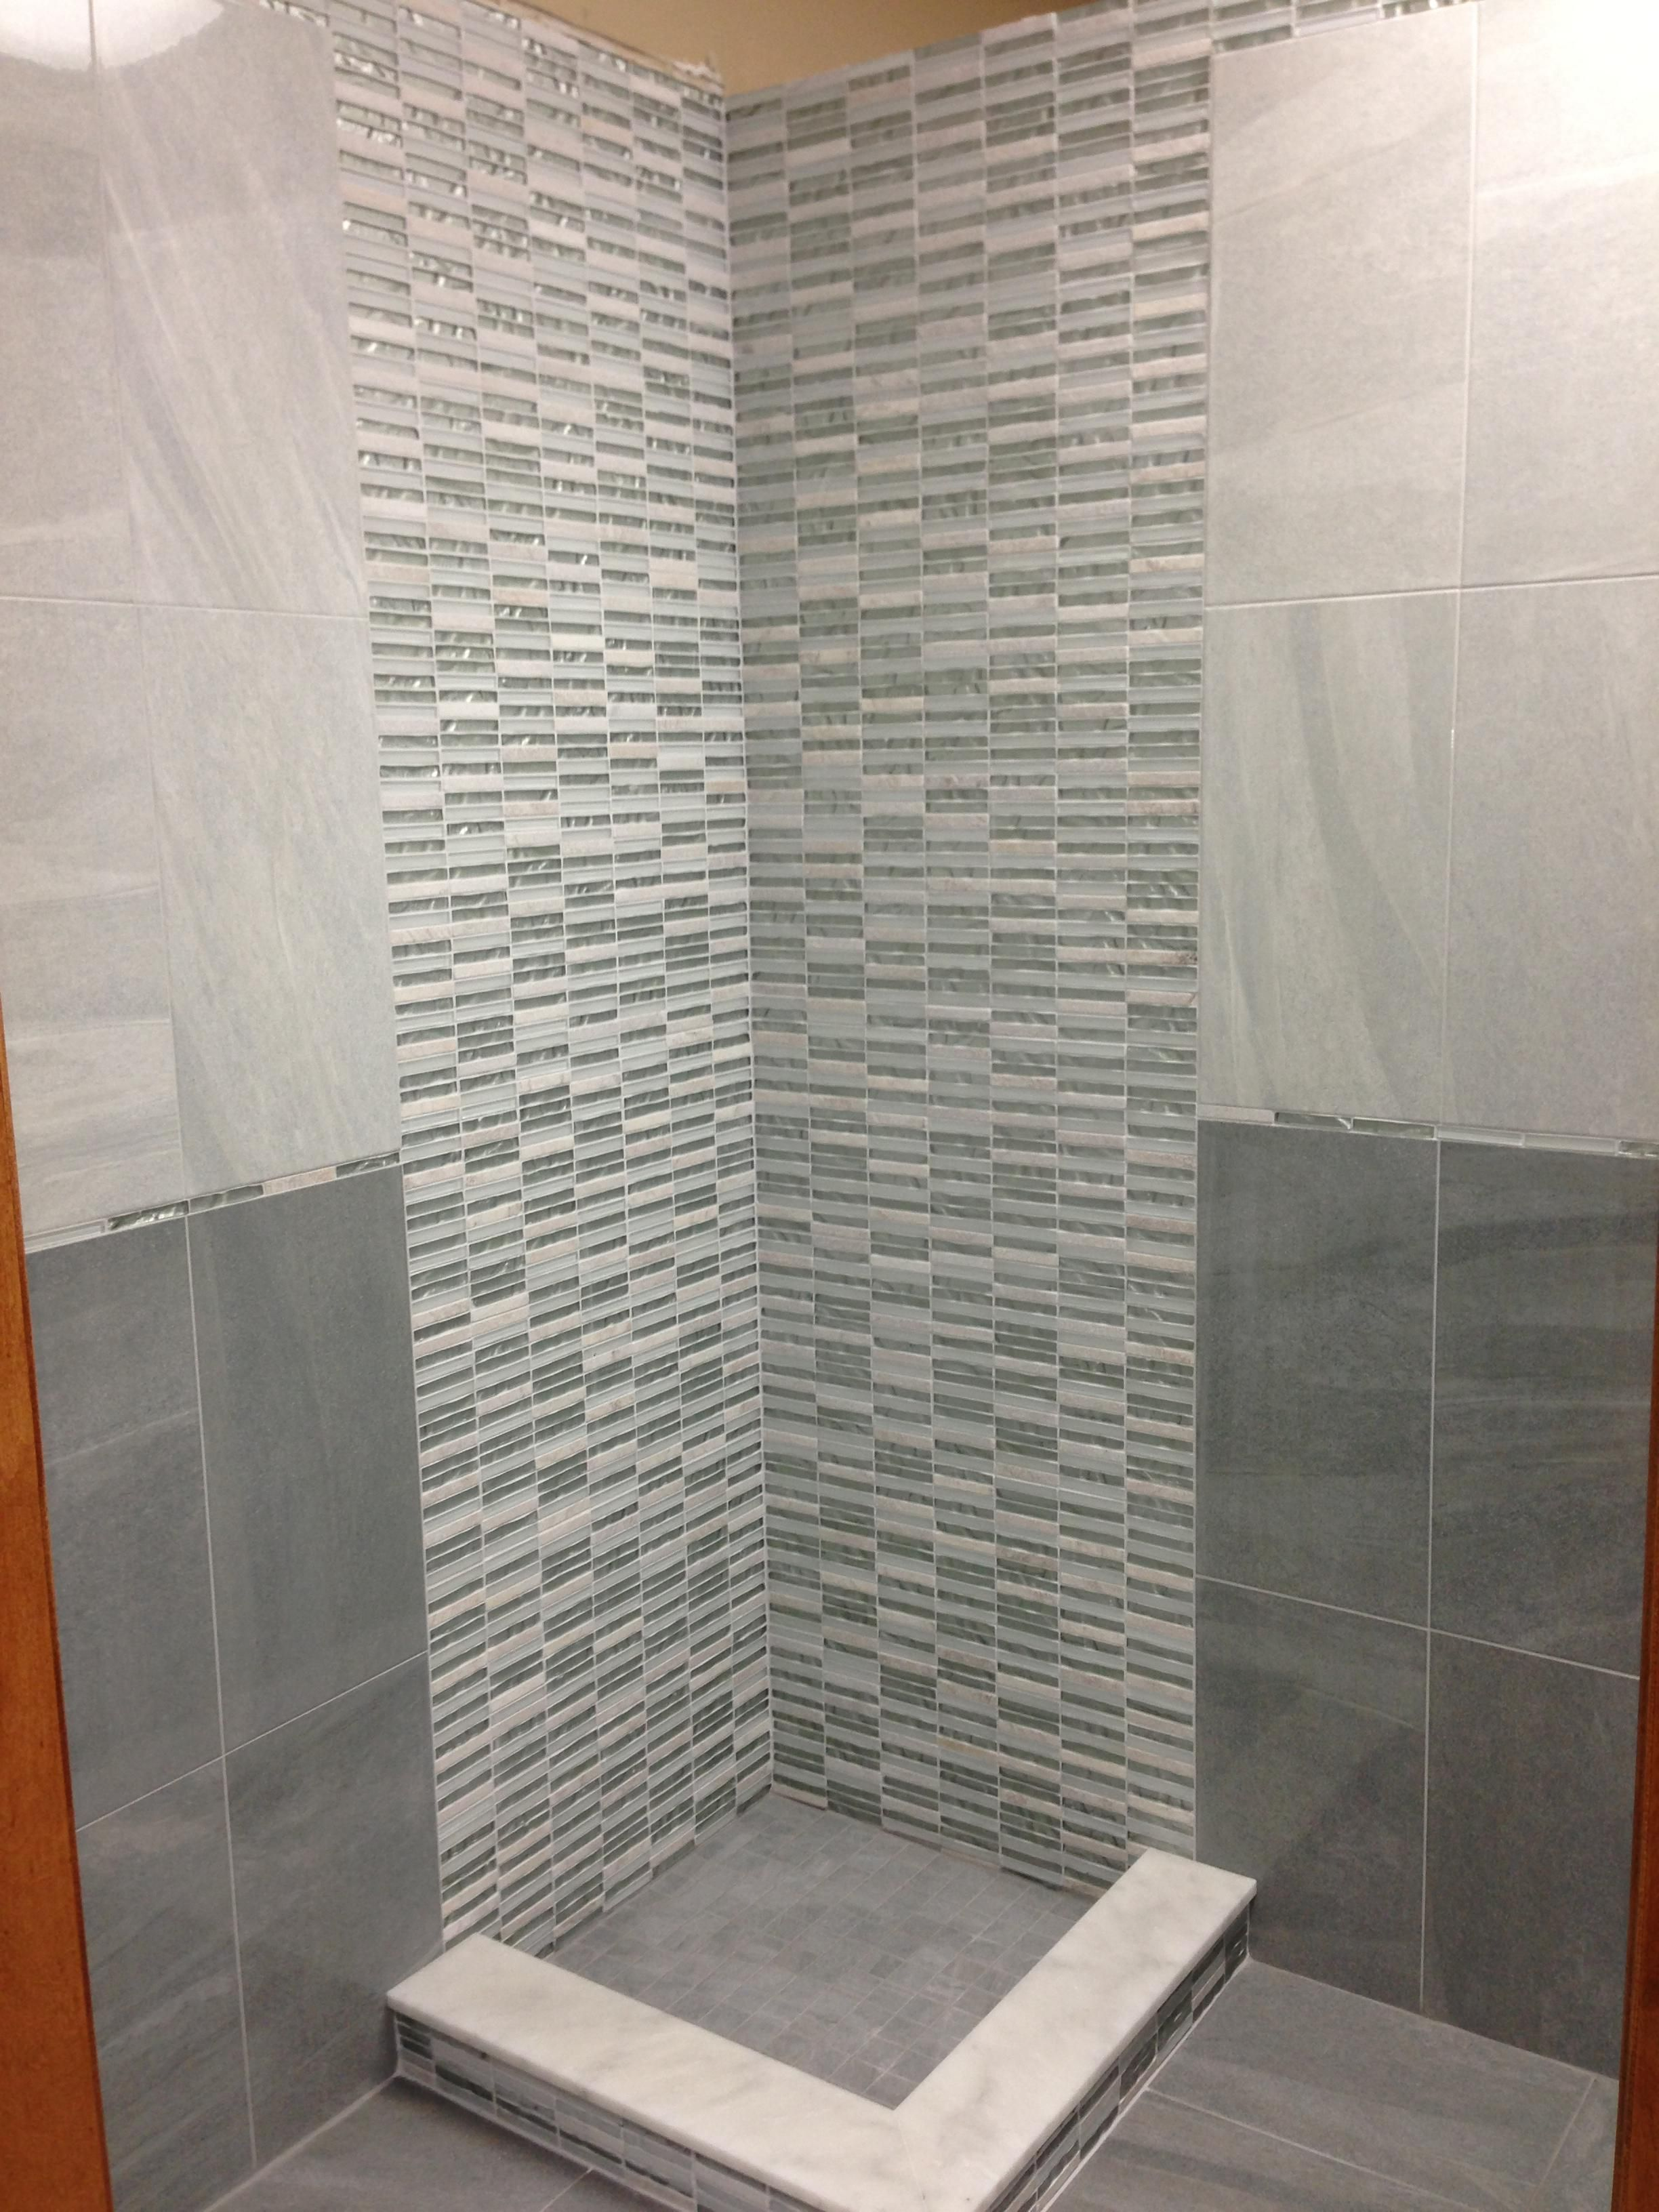 Cool Bathroom Tile Idea With Light 12 X 24 Tiles On Top Of